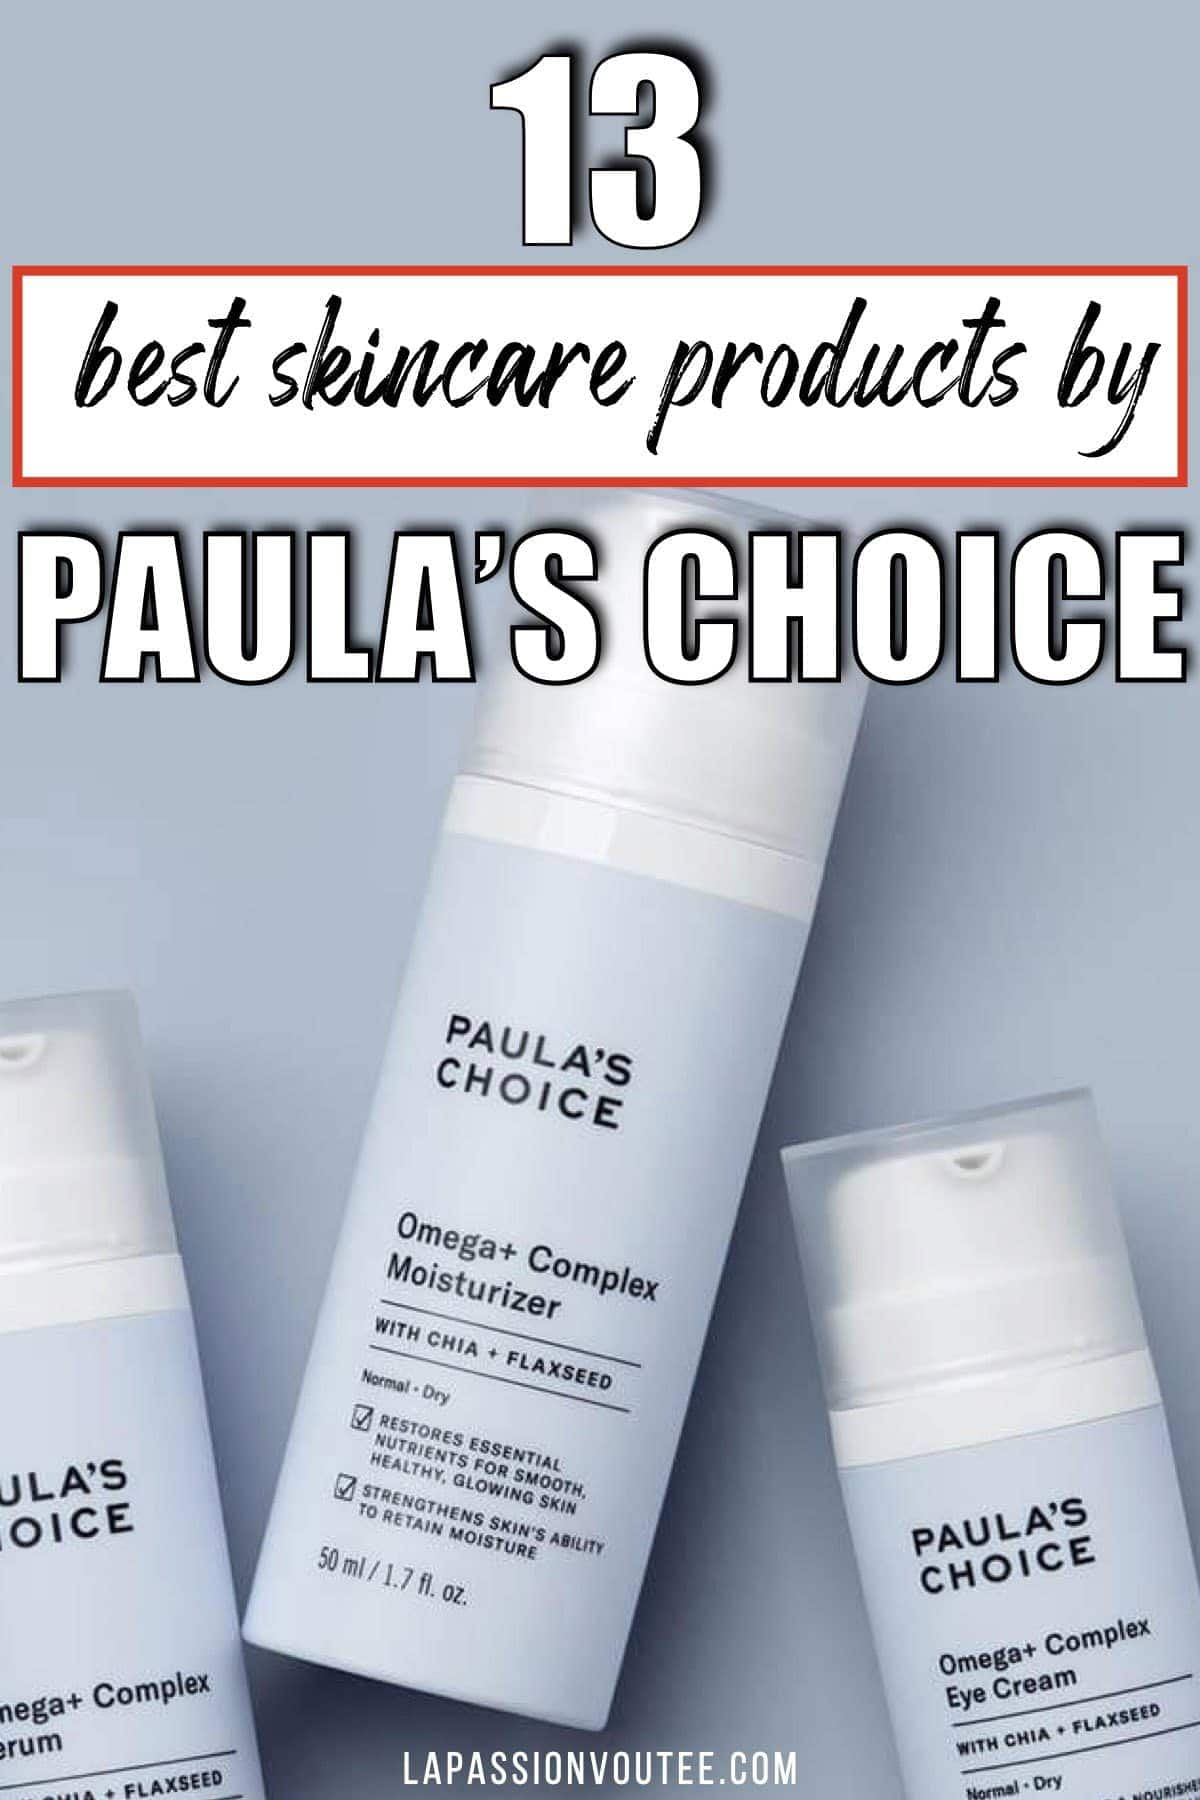 Look no more! These are the 13 best Paula's choice products that are worth the money including the Peptide Booster, 2% BHA Exfoliant, 10% Niacinamide Booster, and the Omega+ Complex Moisturizer.